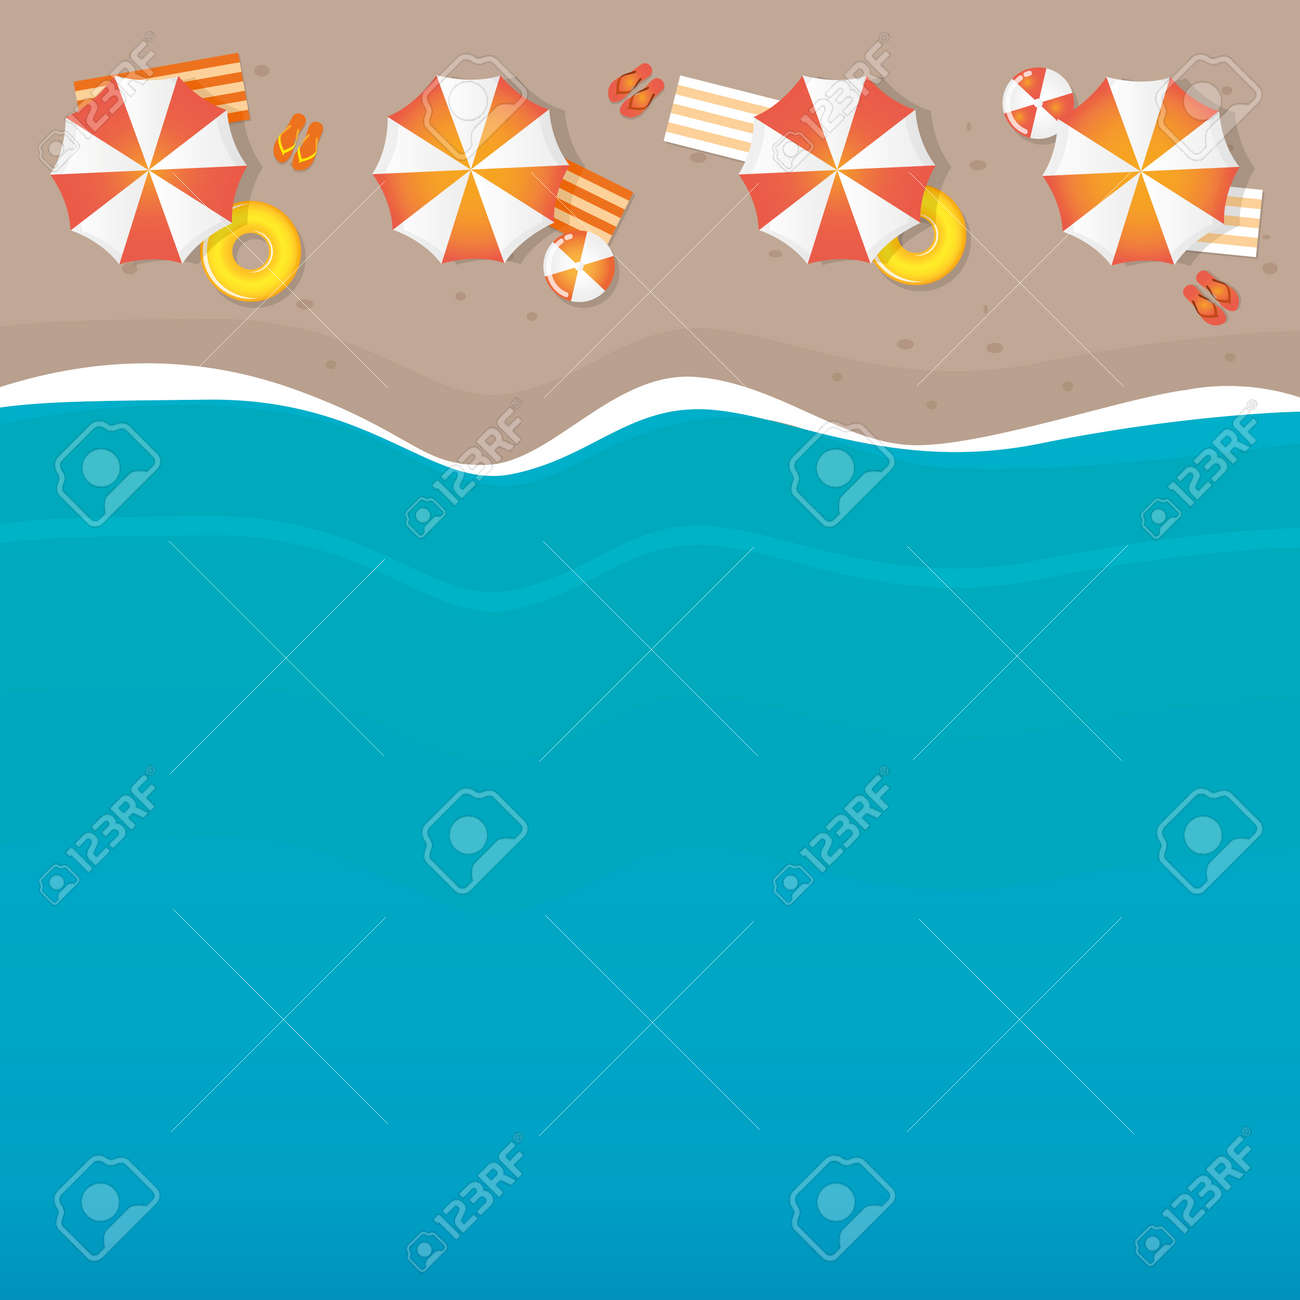 summer holiday on the beach parasol and wave background - 171596768